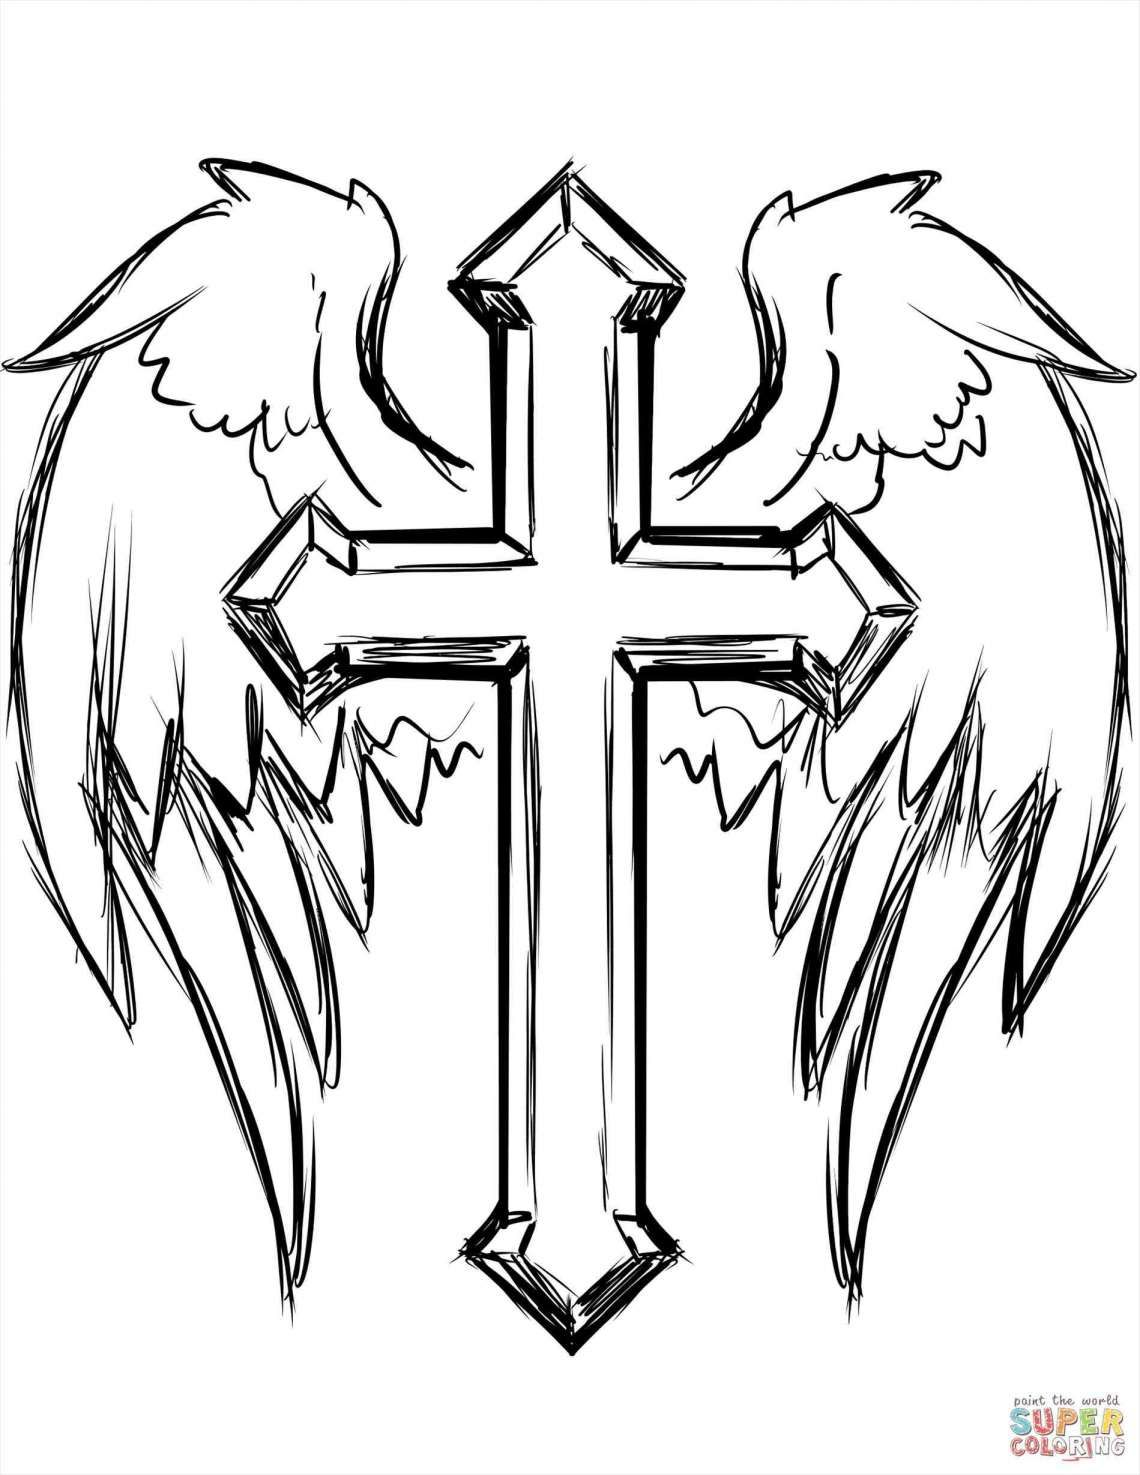 12 Cool Cross Drawings Check More At Https Drawingwow Com 12